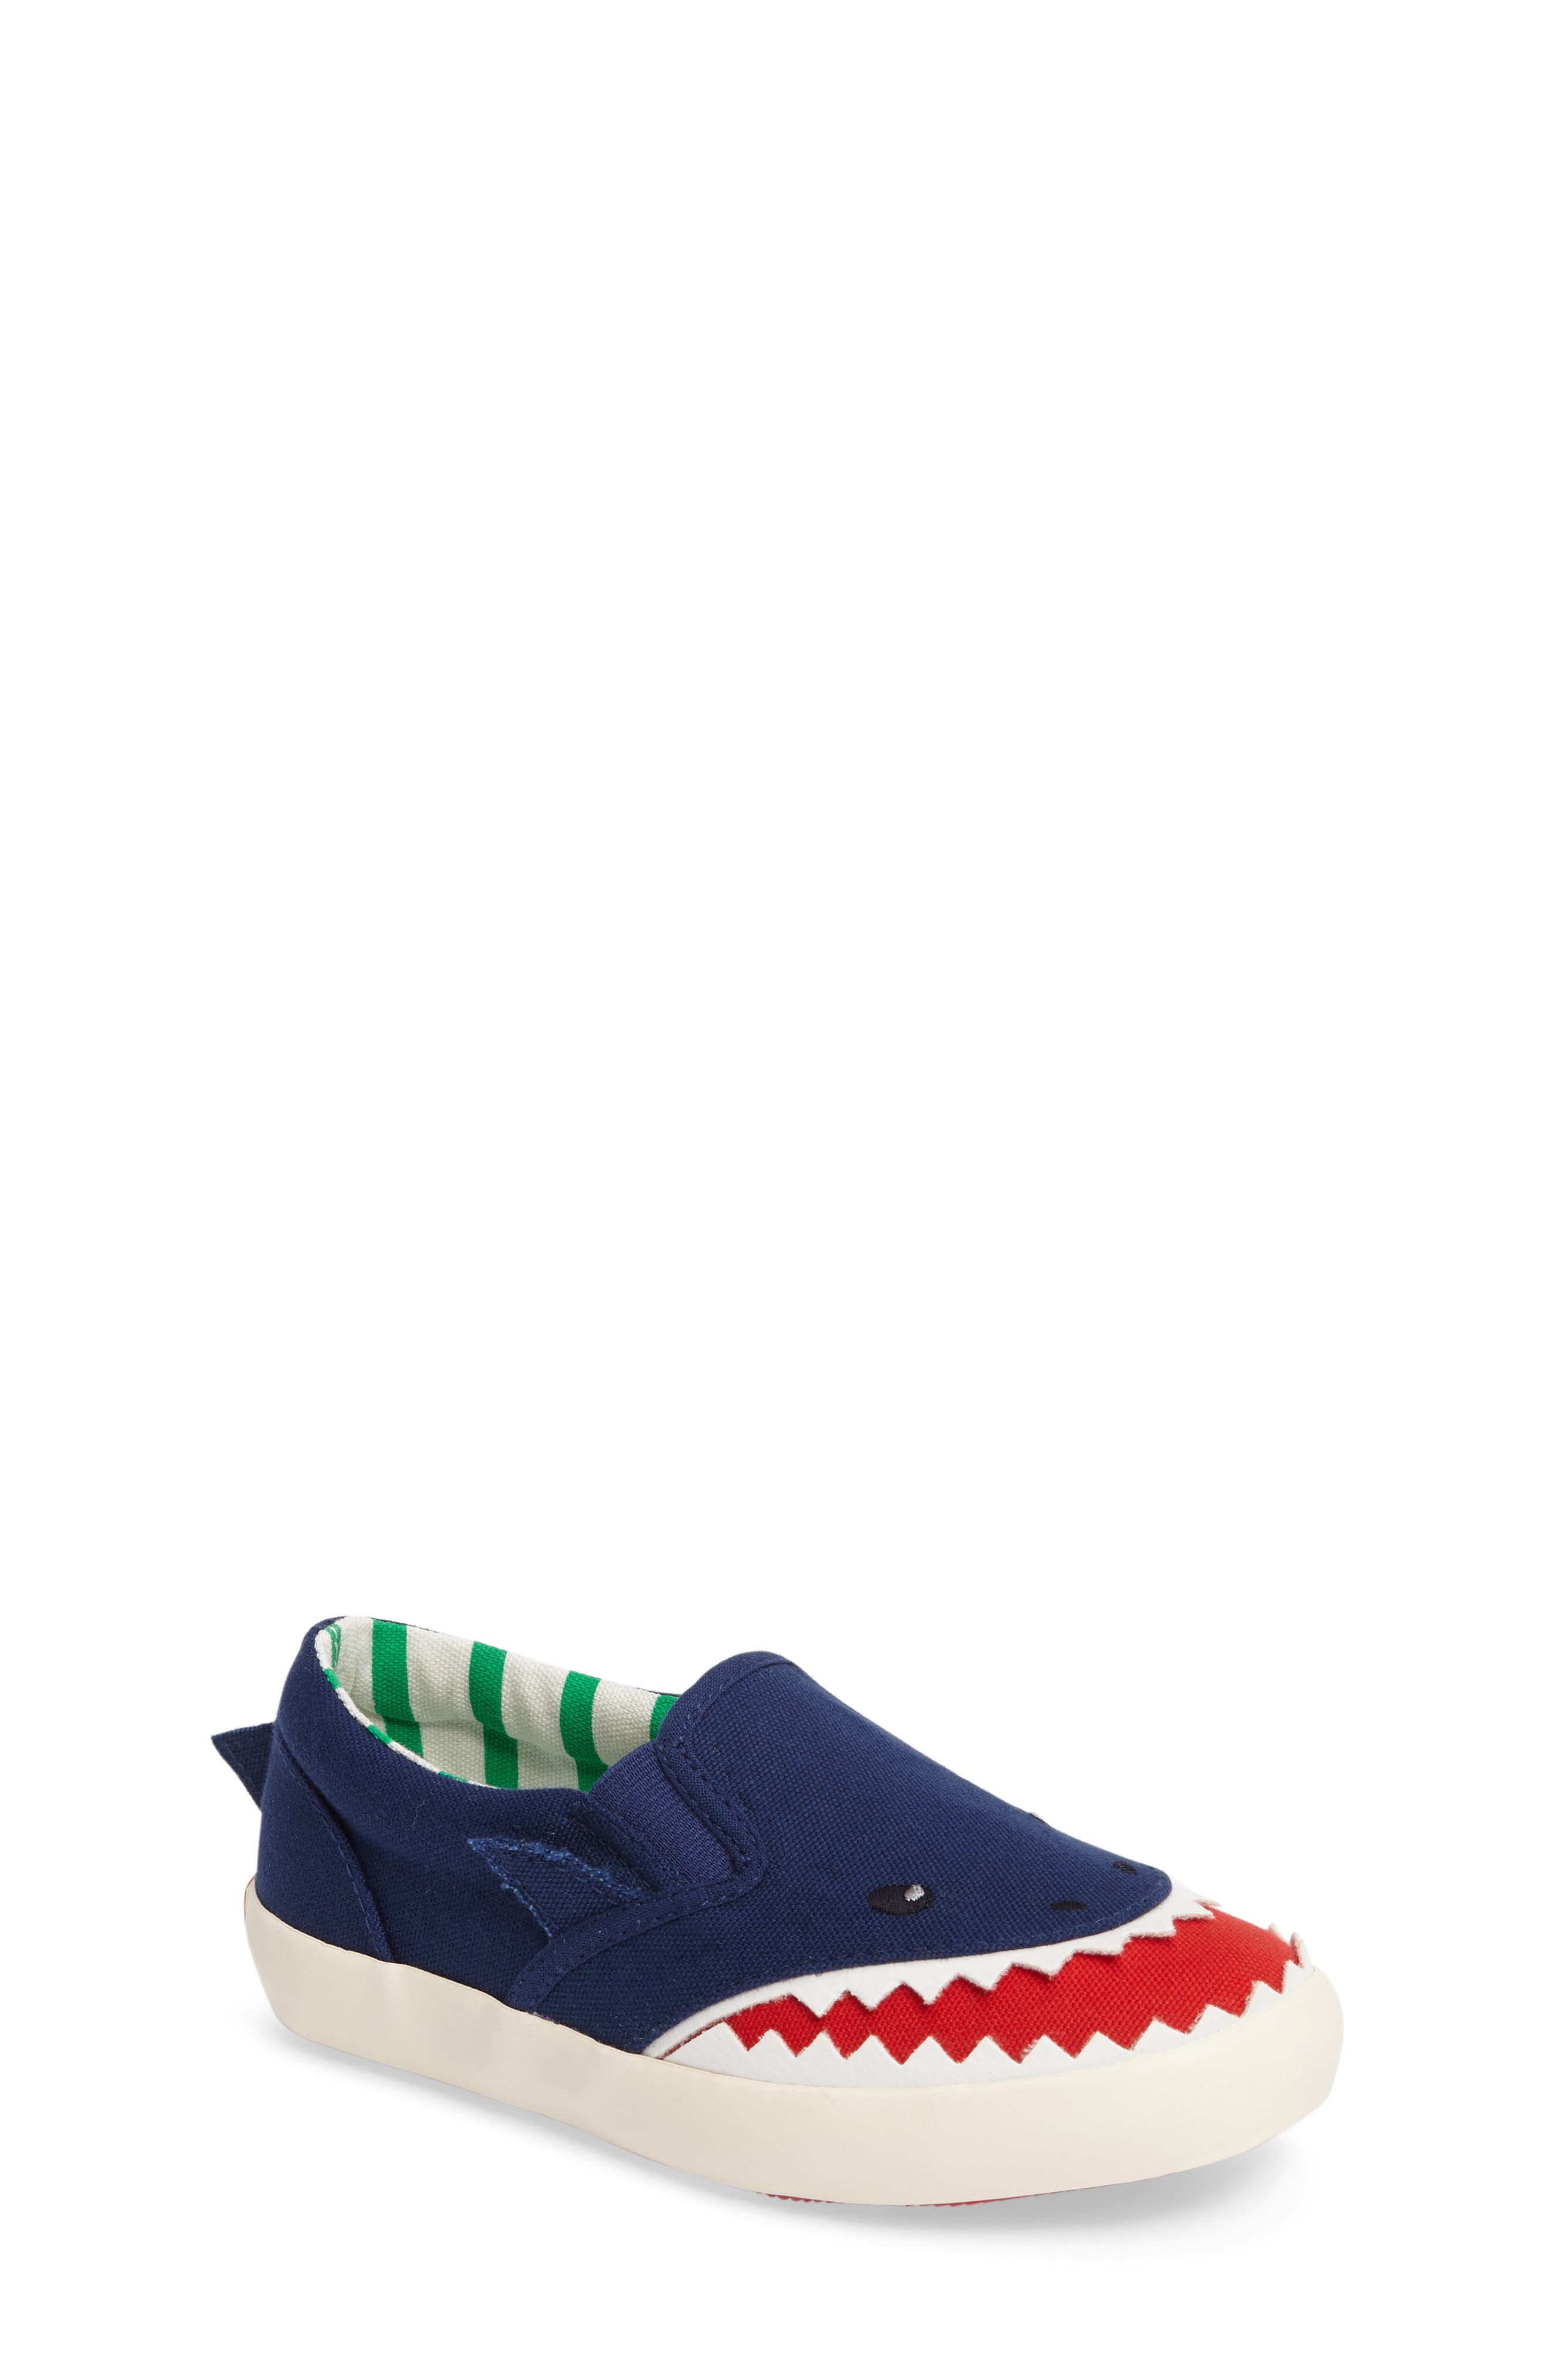 MINI BODEN Slip-On Sneaker